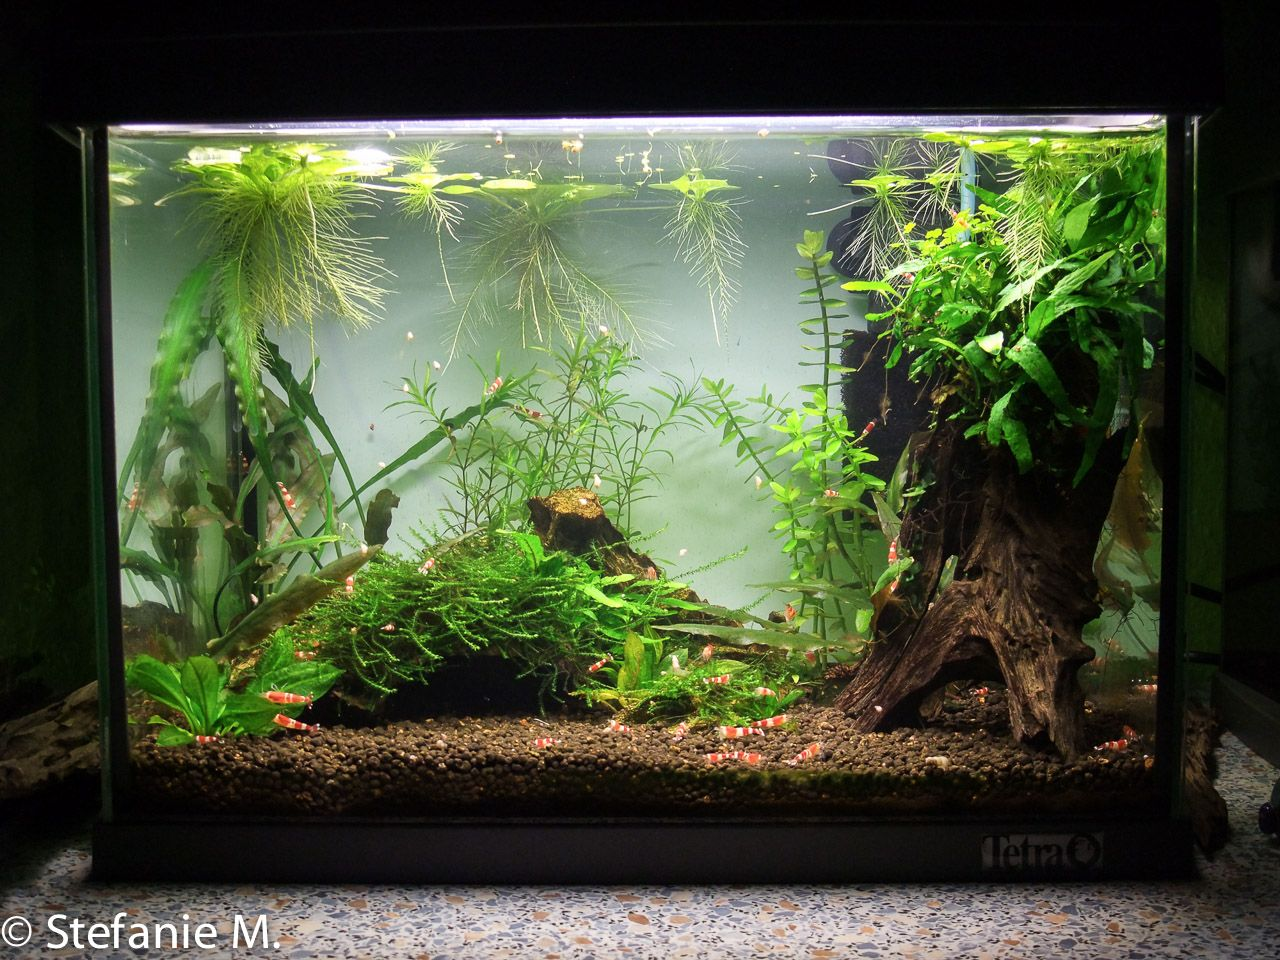 click the image to open in full size fish tanks plants kleines aquarium aquarium und